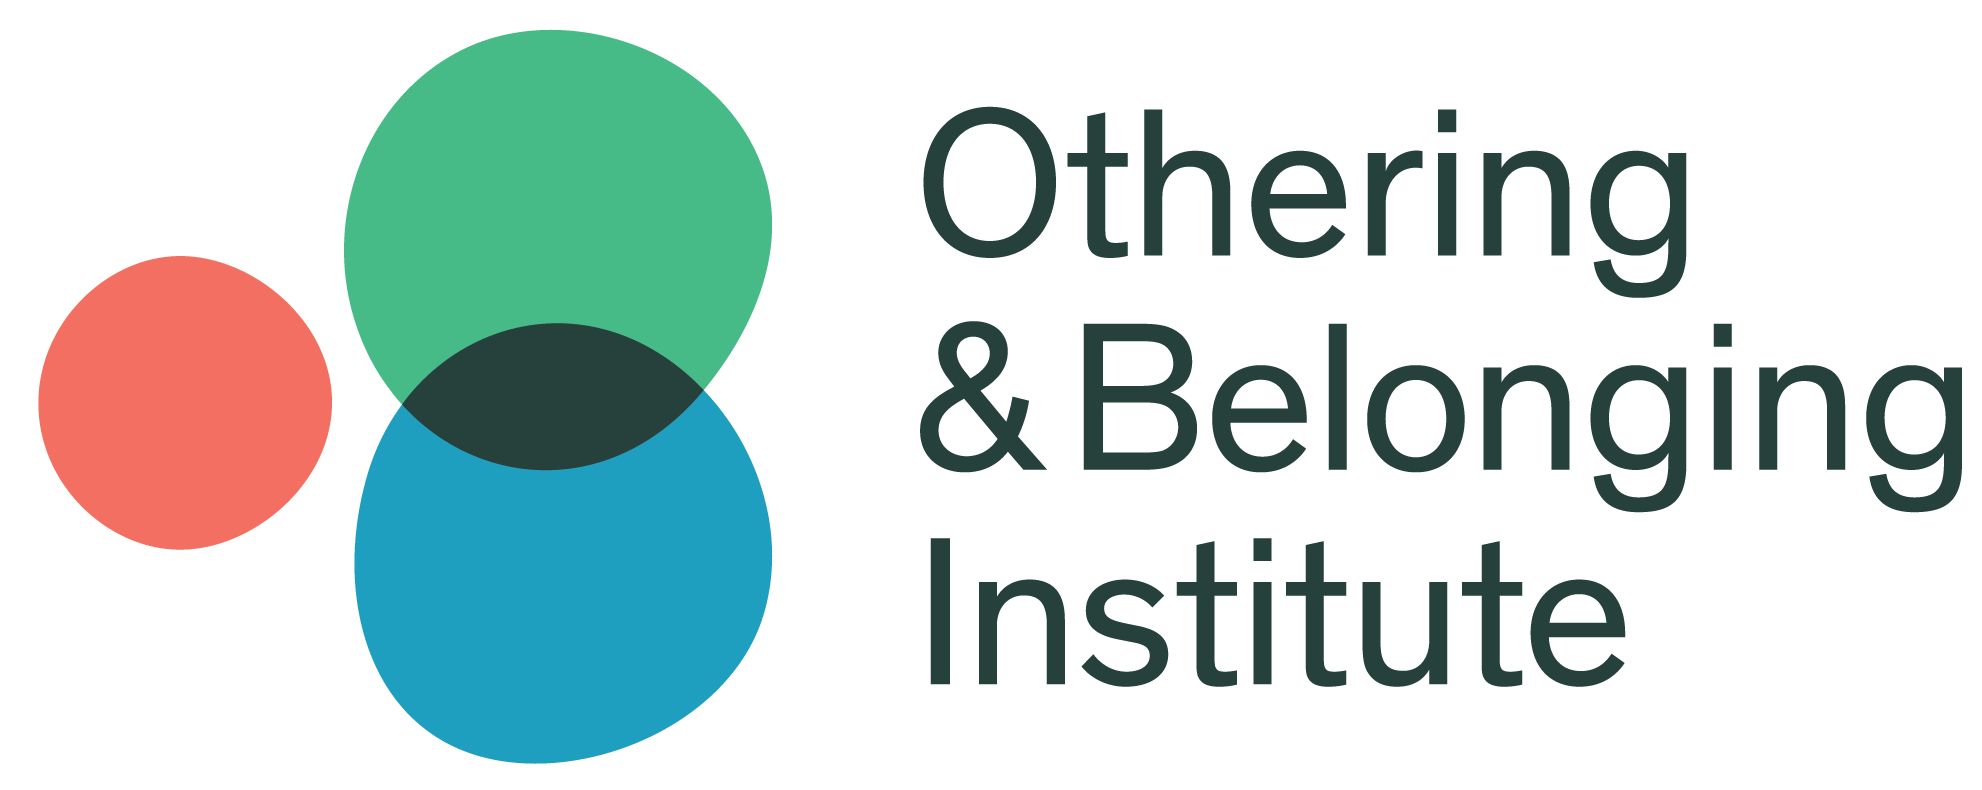 Othering & Belonging Institute at UC Berkeley logo